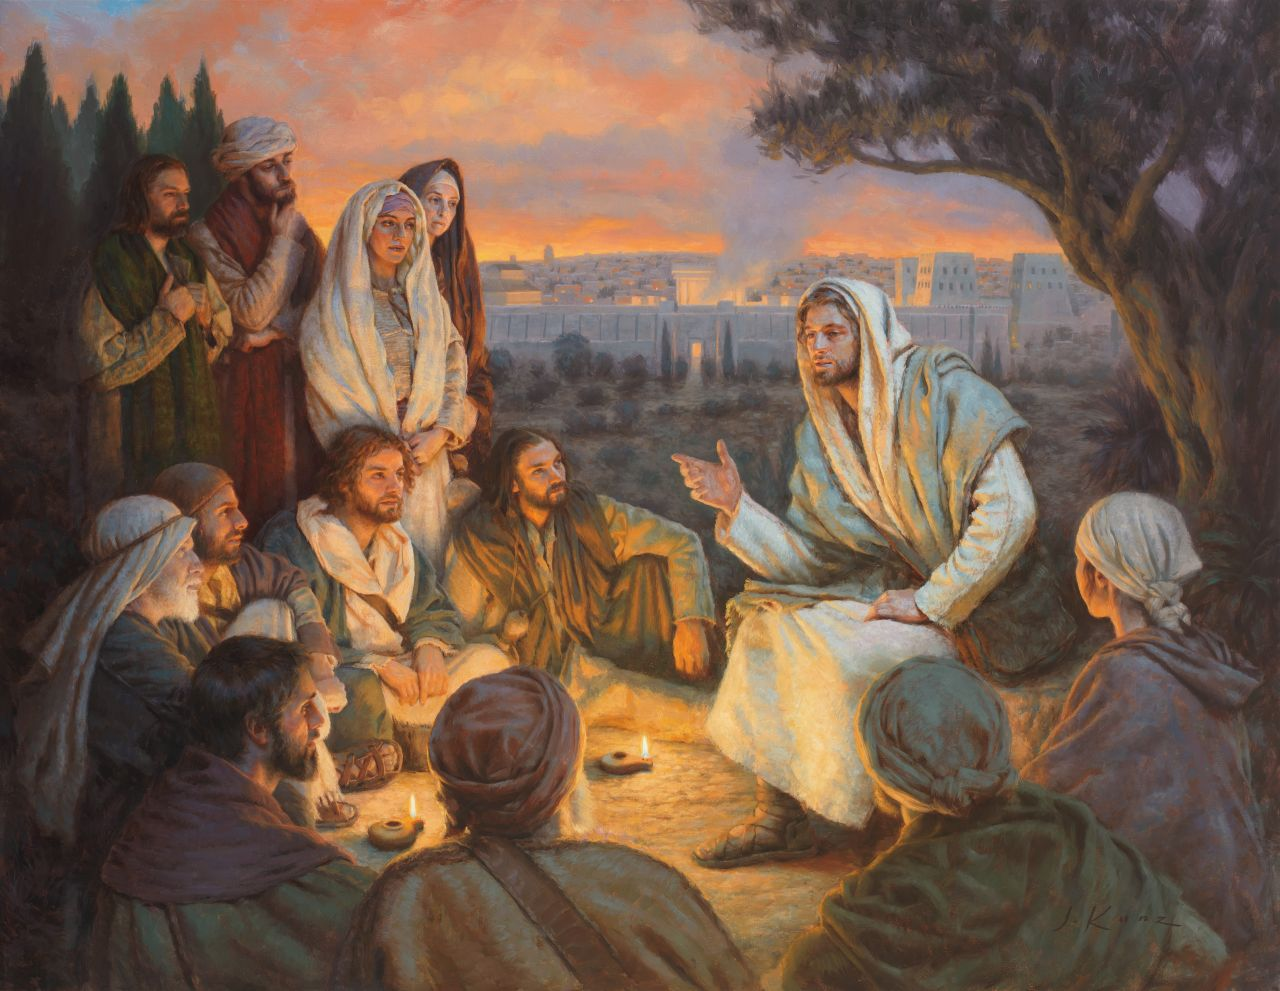 Jesus Christ teaches His disciples on a hill overlooking the city gates of Jerusalem